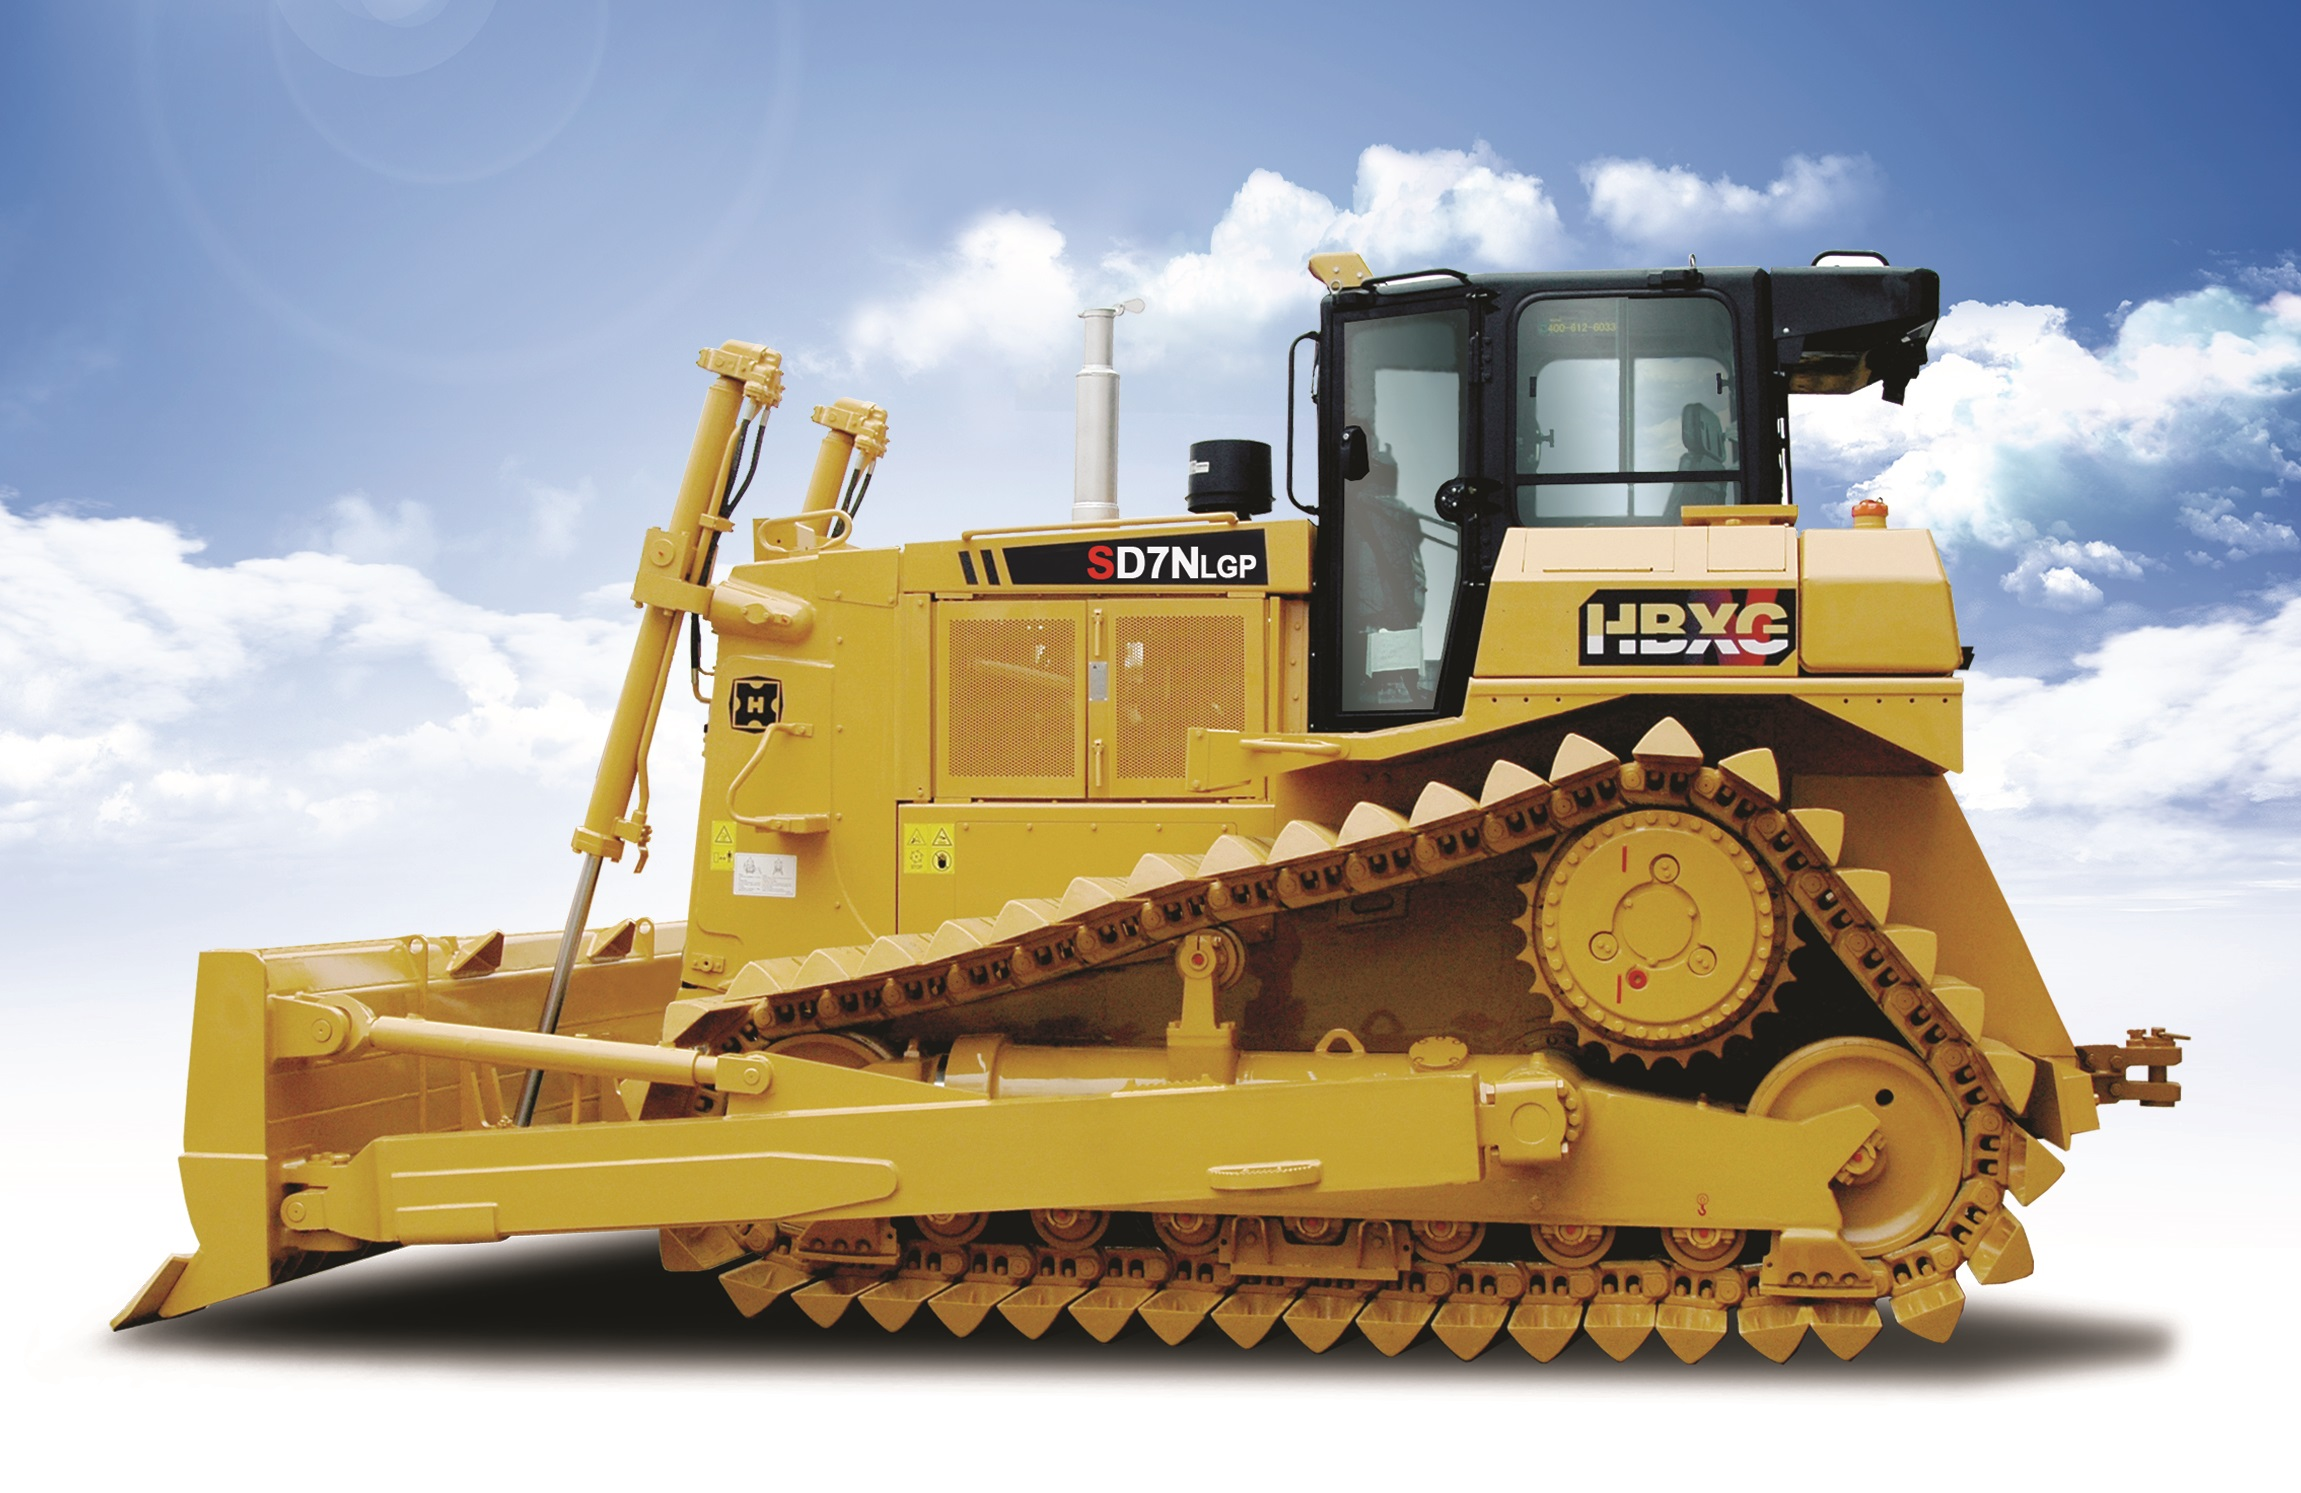 SD7NLGP Bulldozer